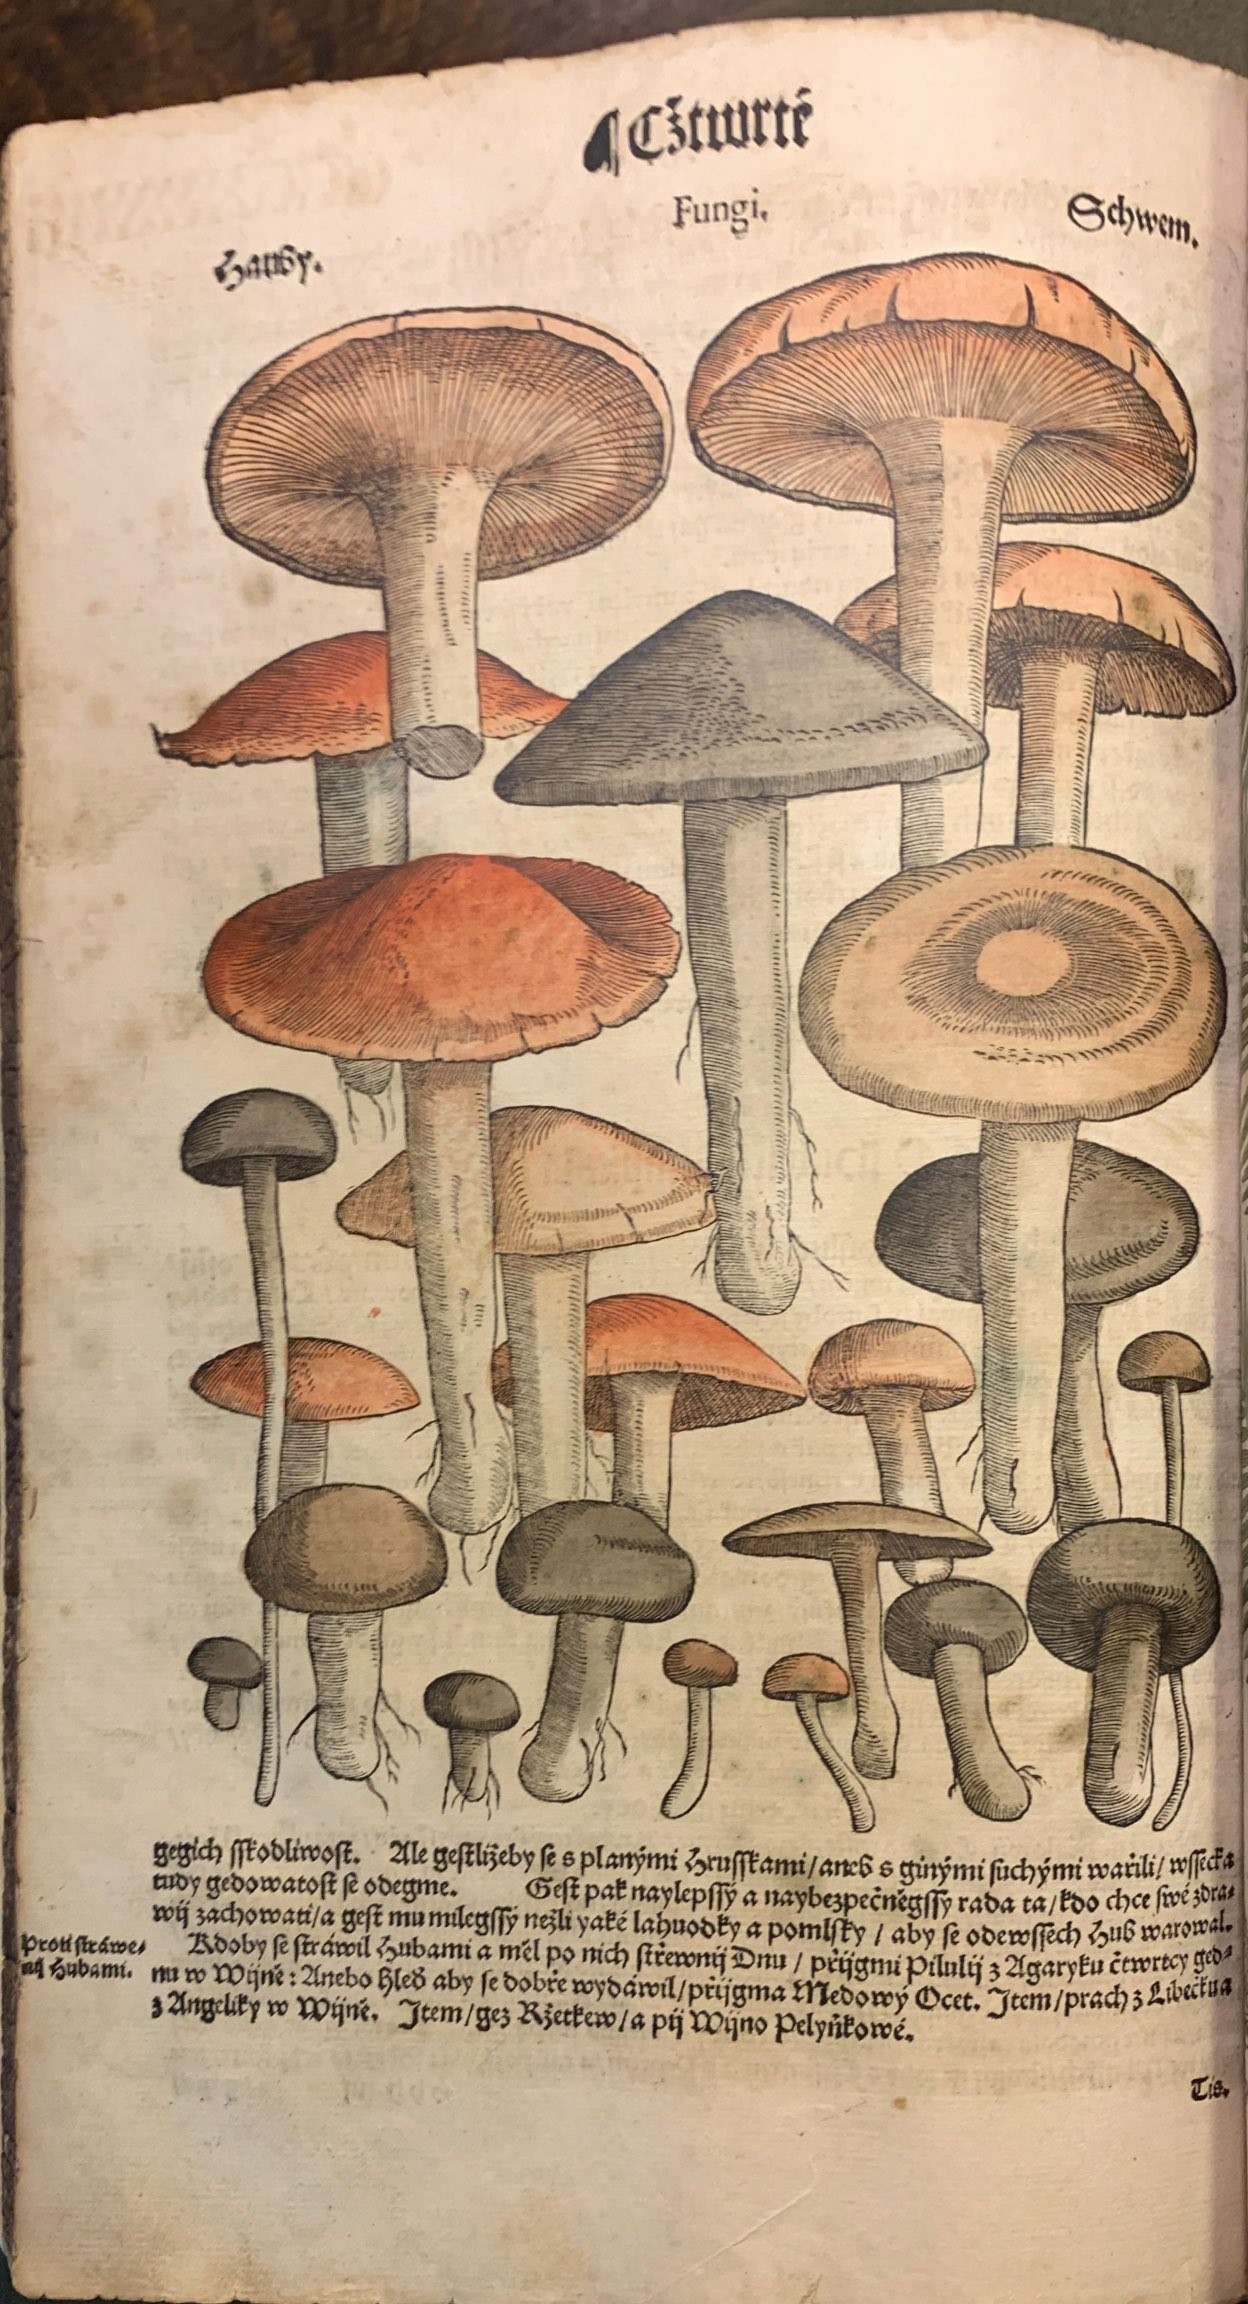 Illustration of mushrooms in a Czech herbal